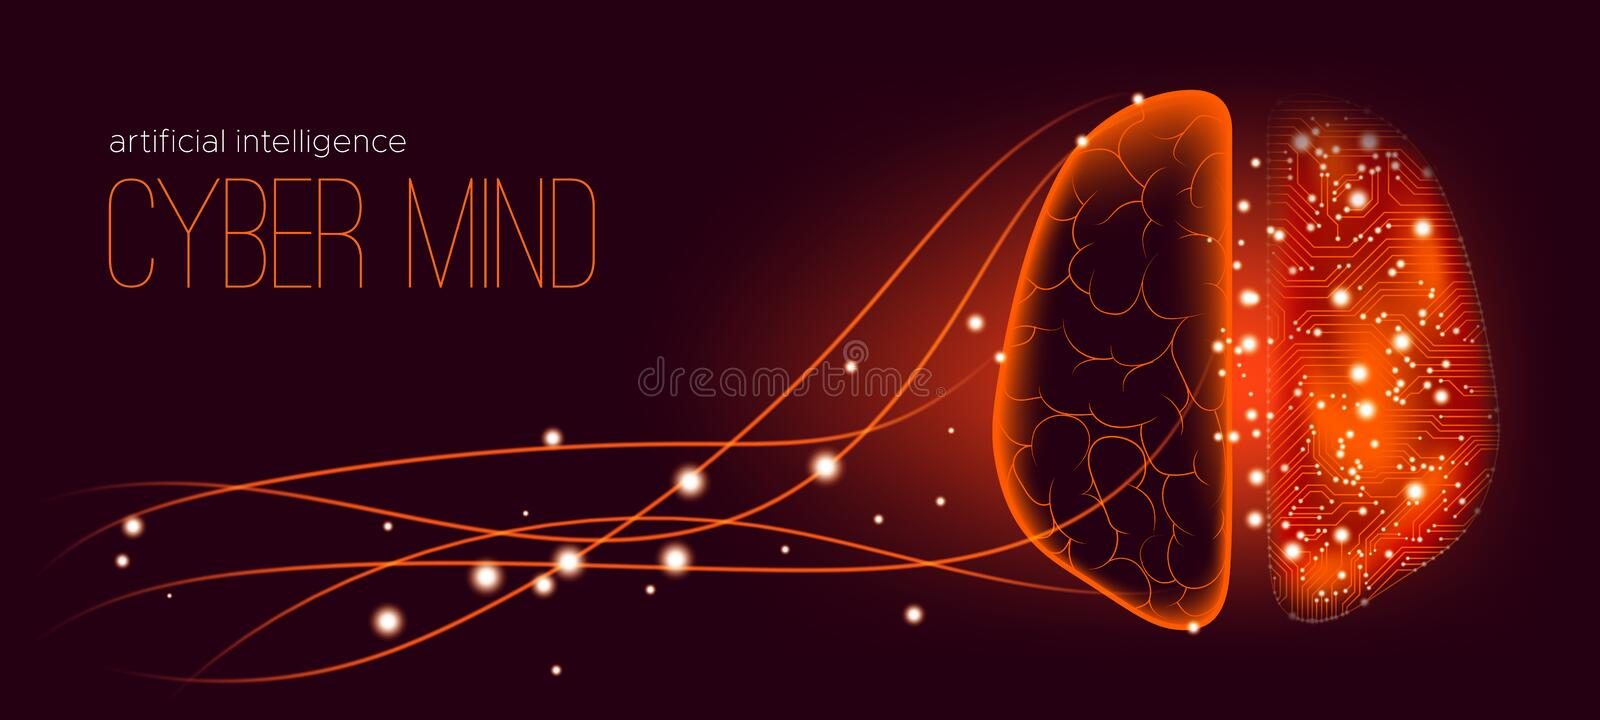 Artificial Intelligence and Cyber Mind Concept. vector illustration